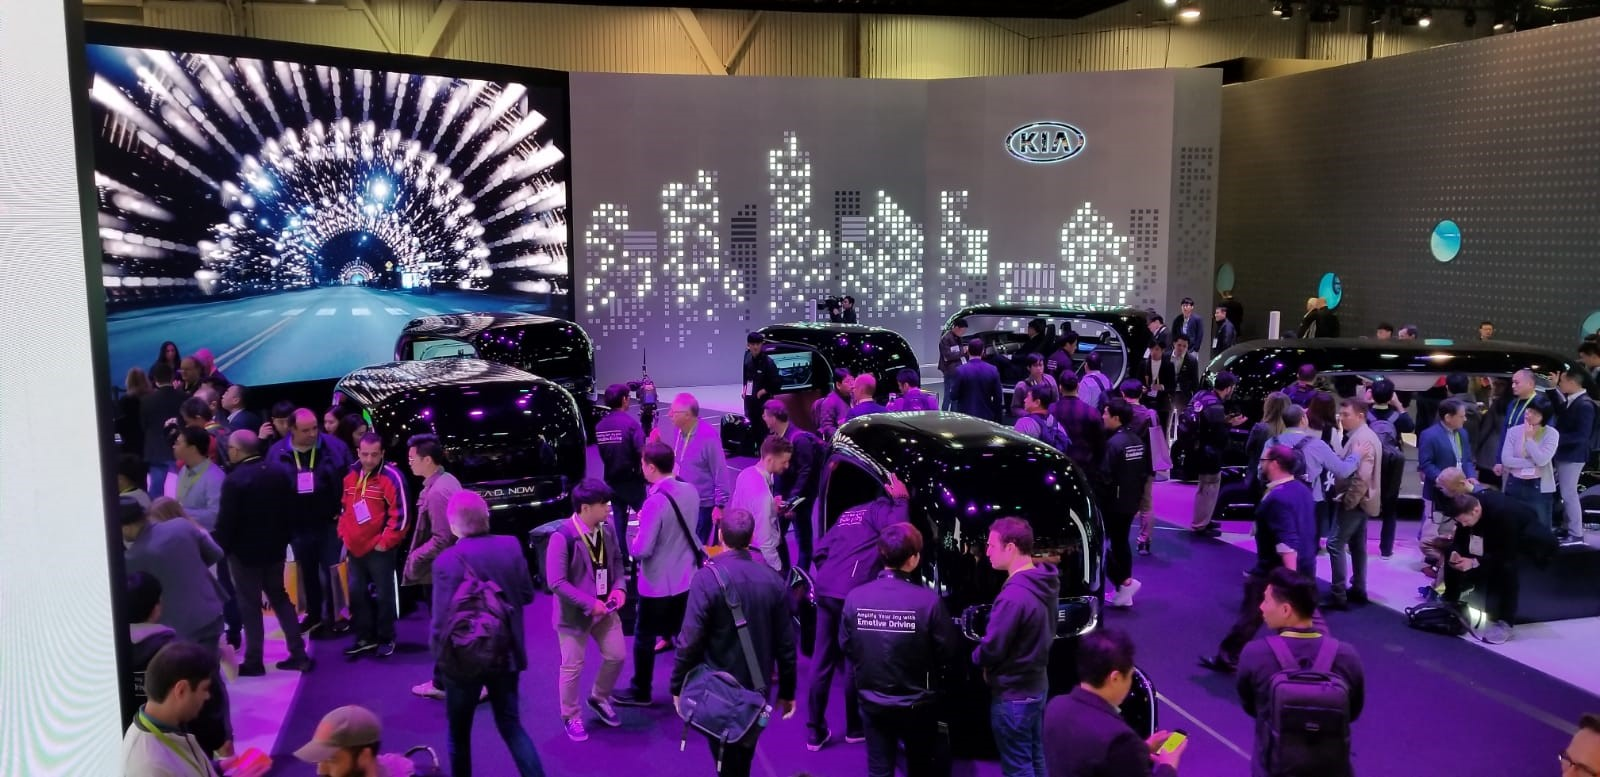 Kia unveiled its new READ (Real-time Emotion Adaptive Driving) concept, which is meant to adapt the on-board experience of drivers and passengers in the era of self-driving vehicles.